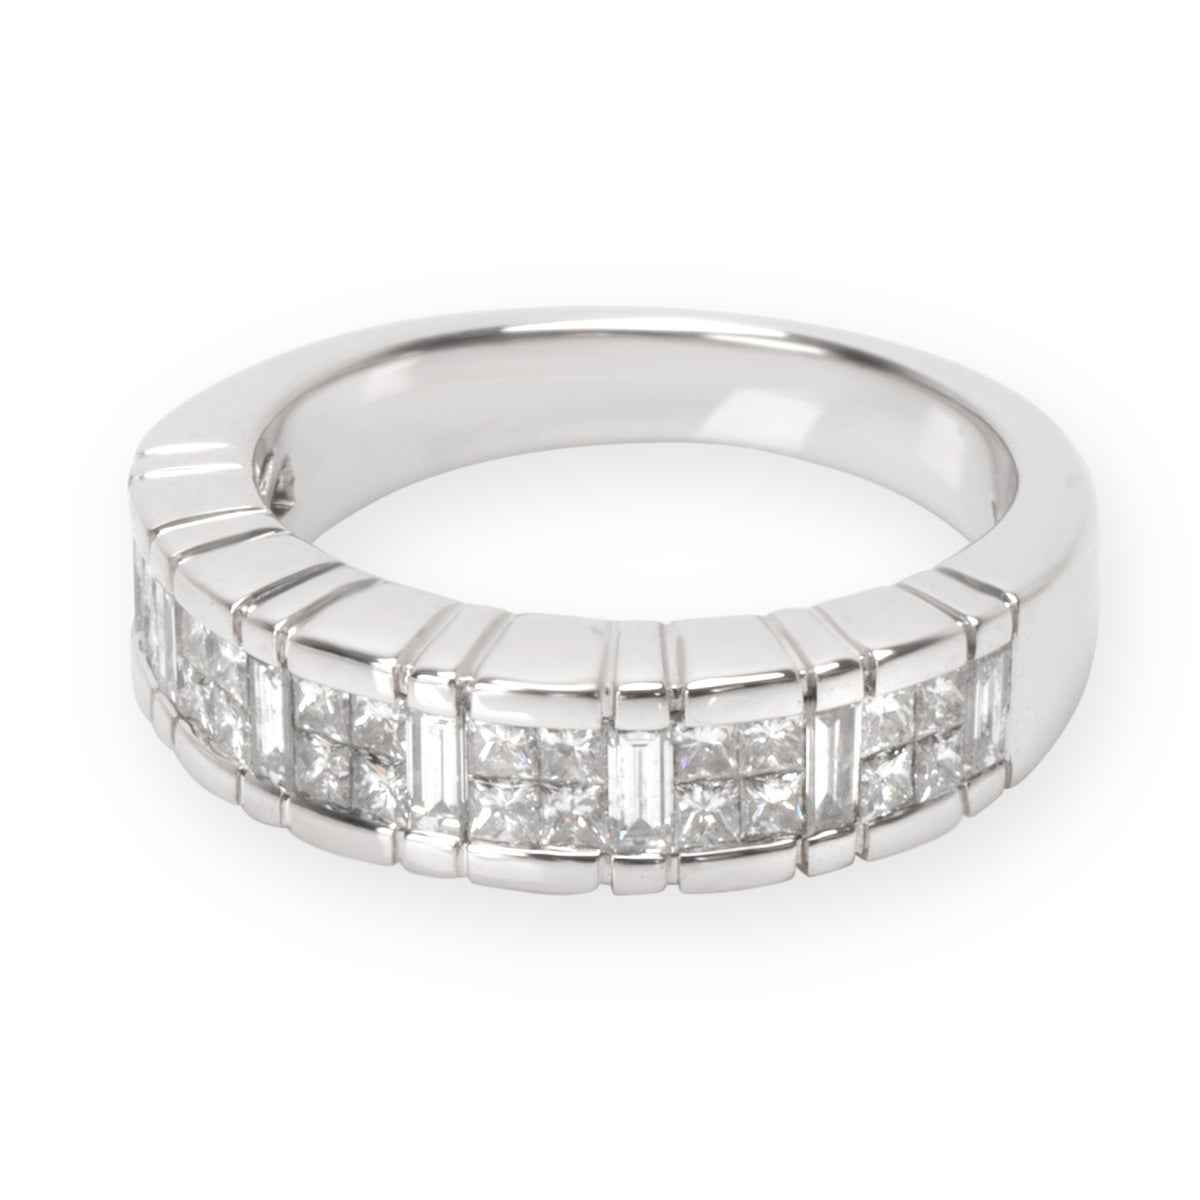 Princess & Baguette Diamond Band in 18K White Gold 0.81 CTW